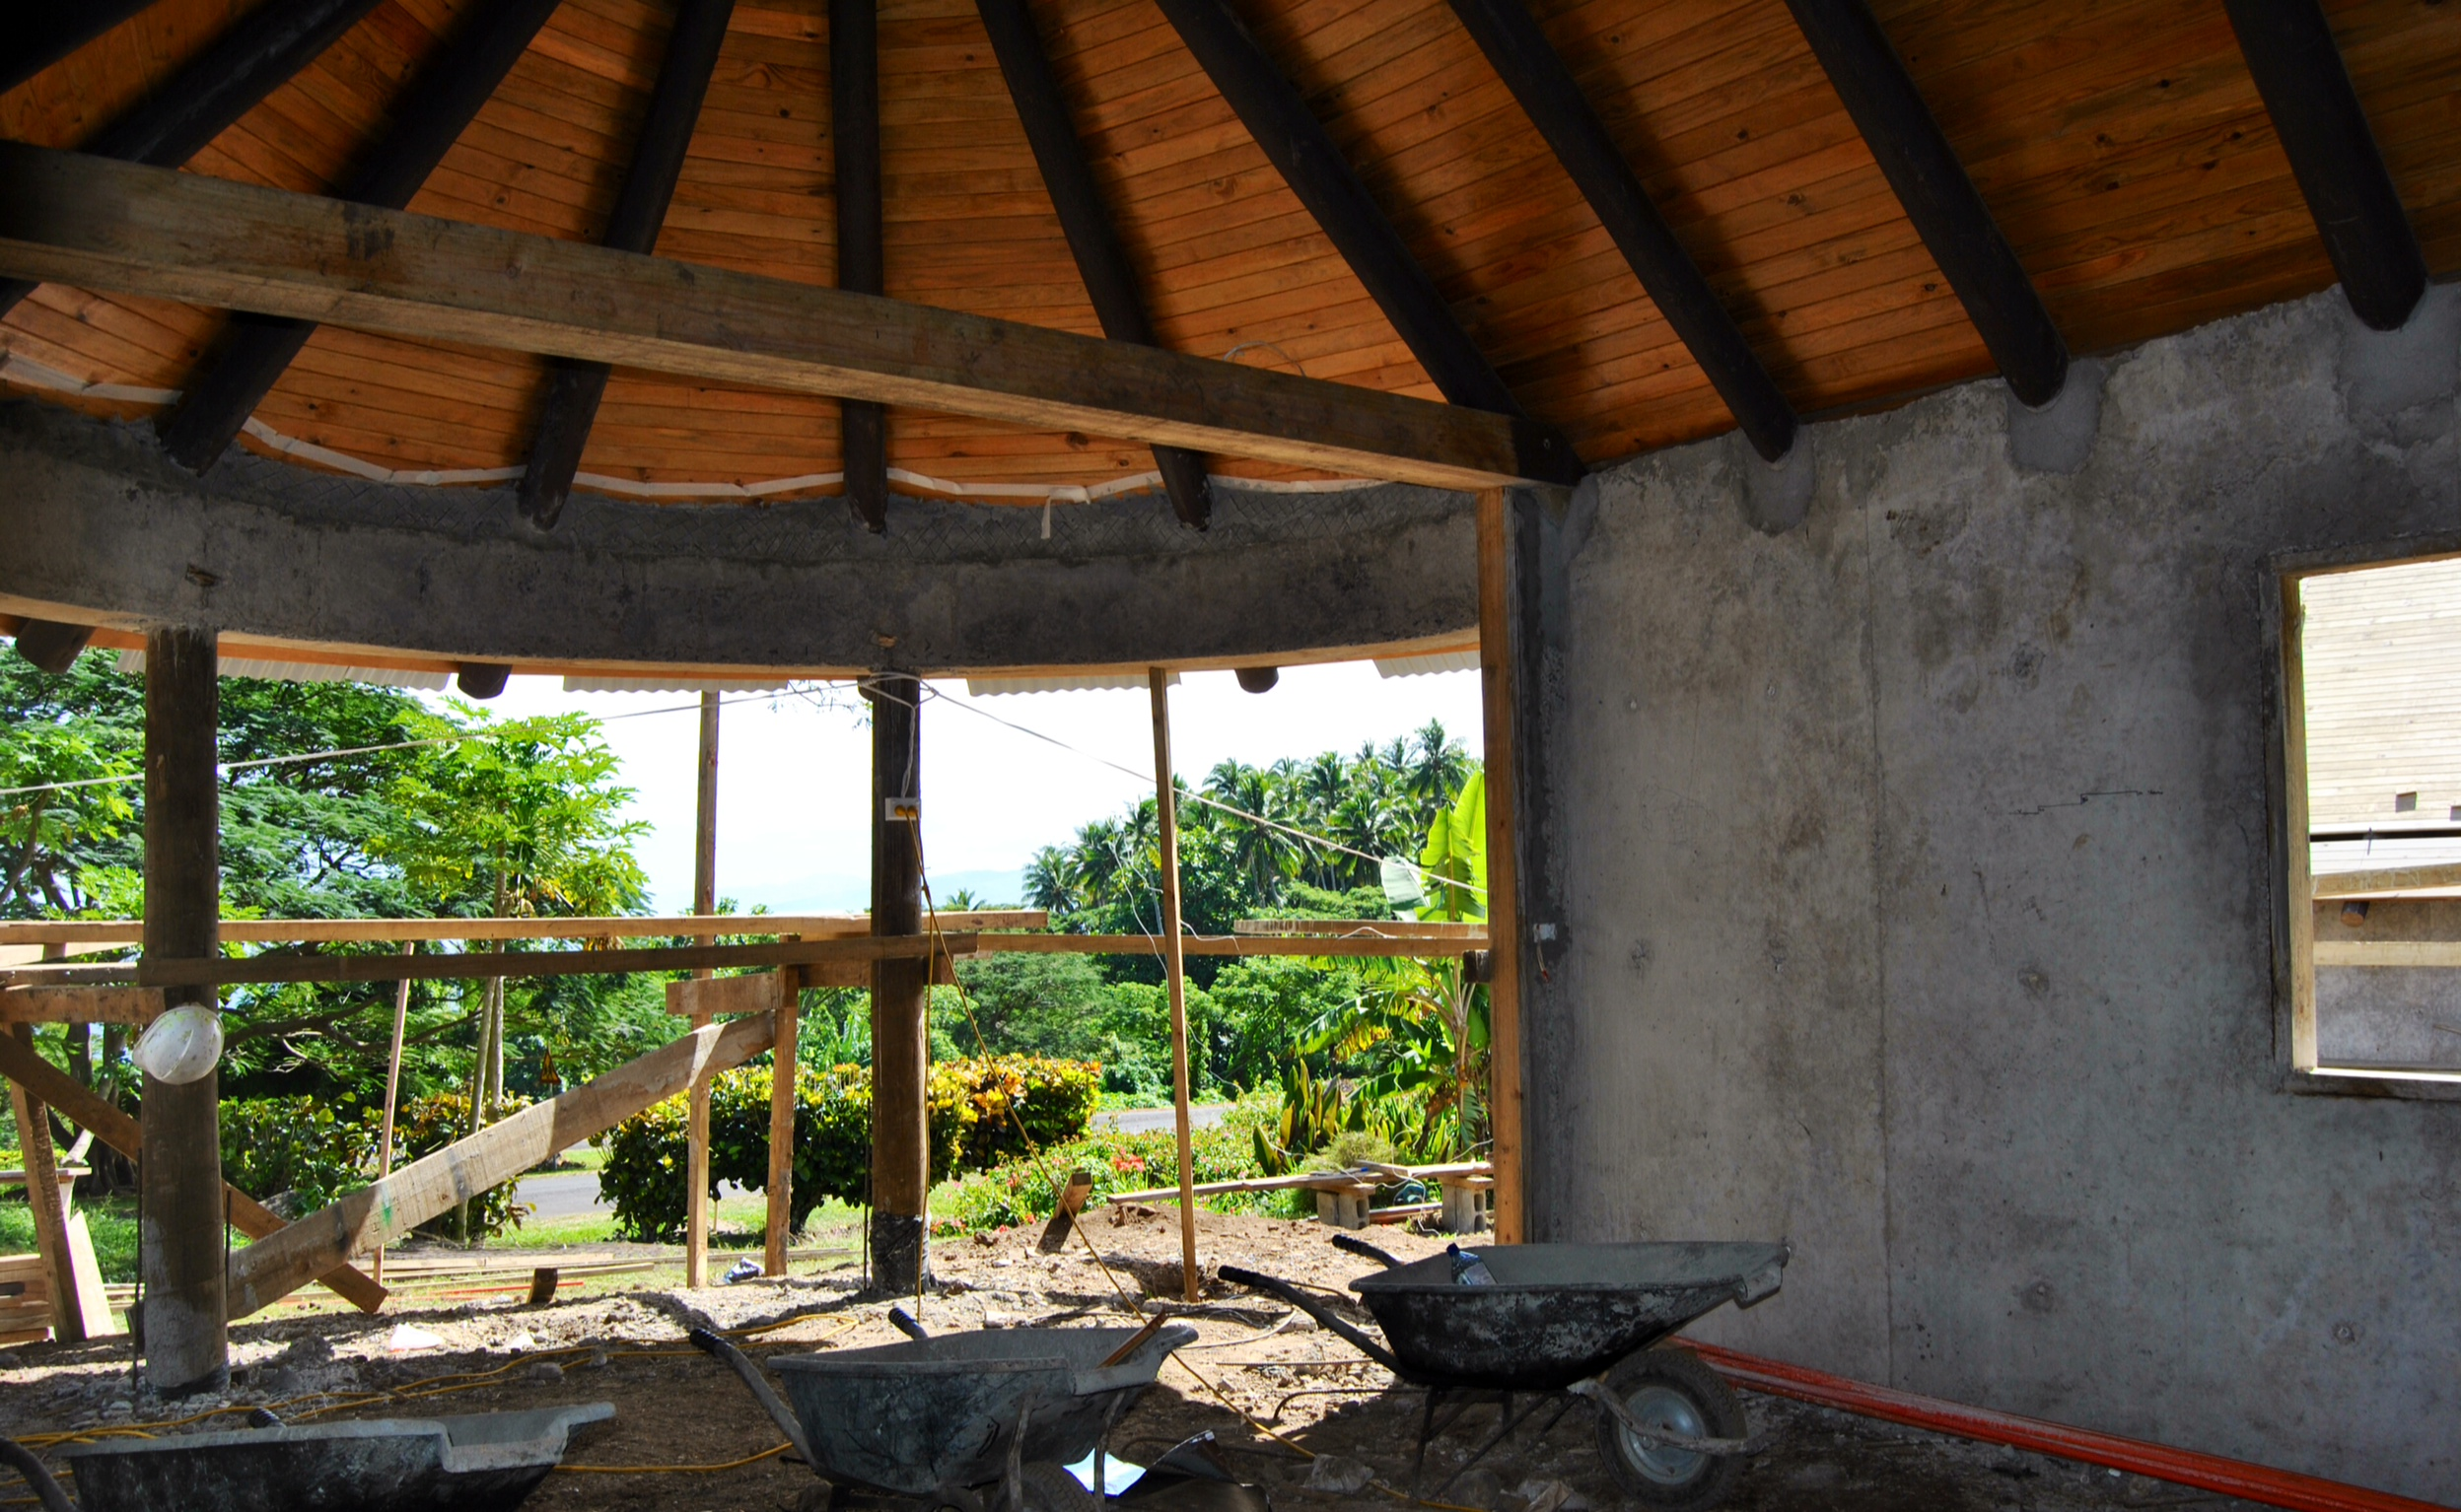 Tongue in groove completed at Bure 1. How is that view out the front?